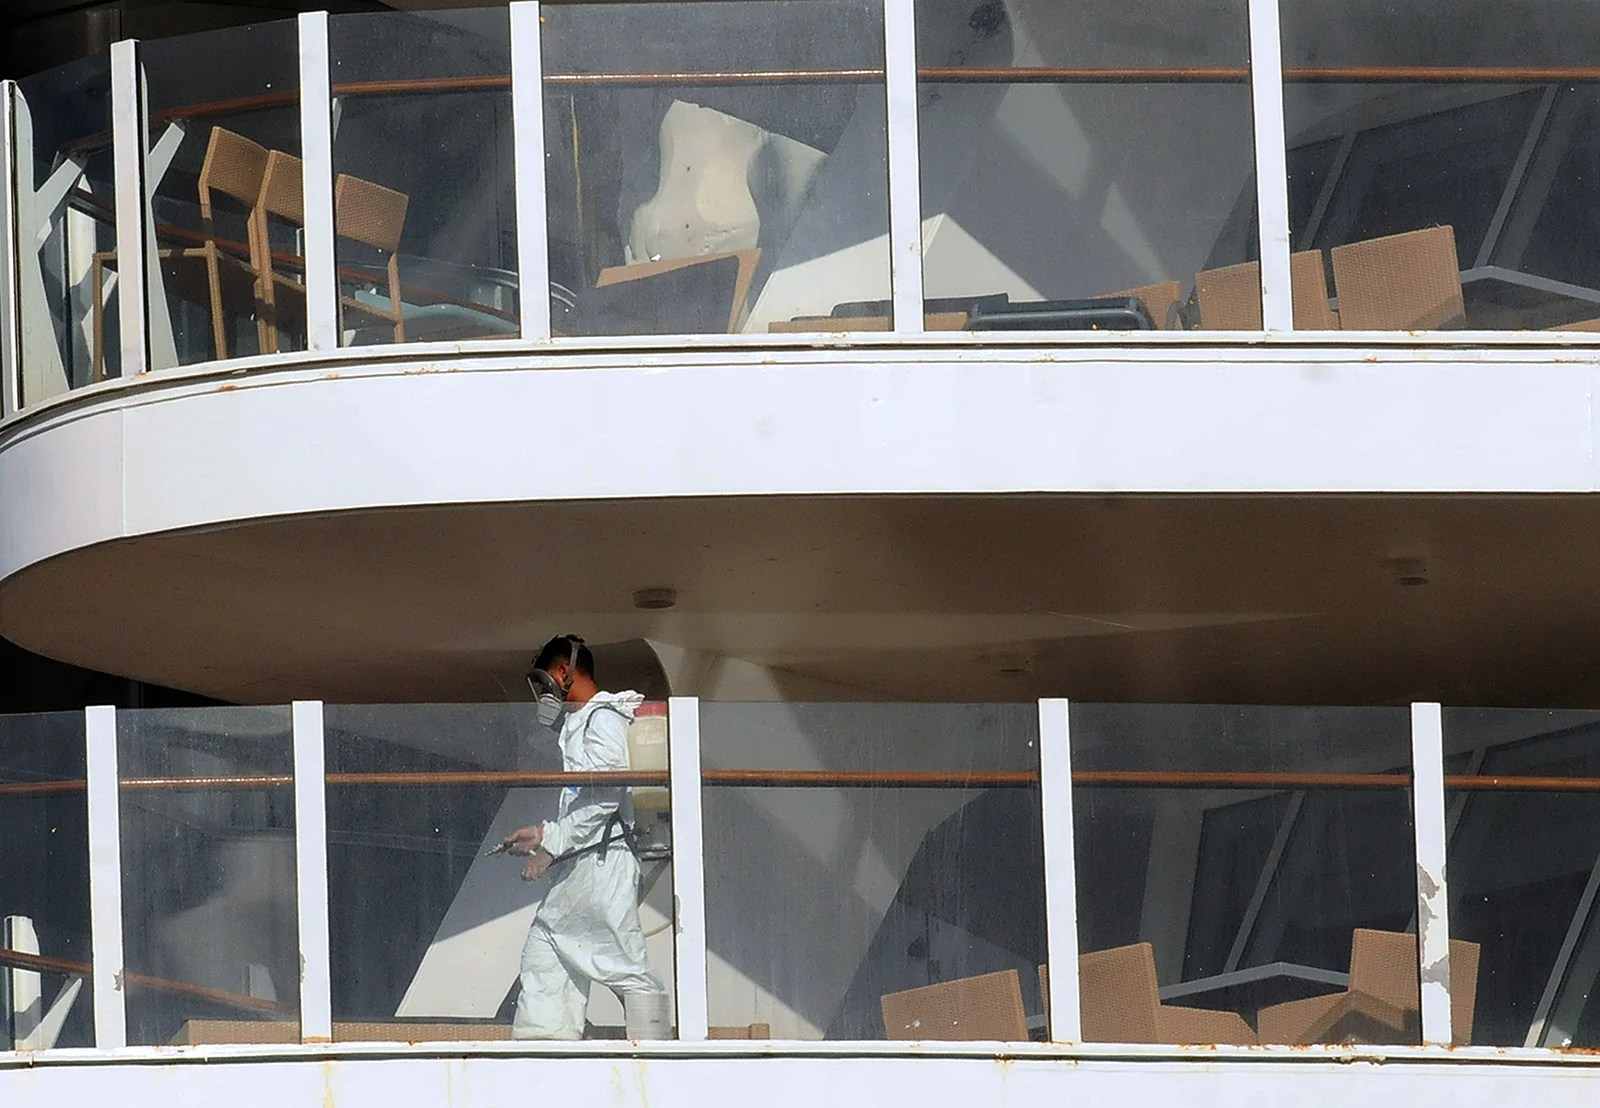 A Crew member on a cruise ship sprays disinfectant to sanitize the ship. (Photo by Paul Hennessy/NurPhoto via Getty Images)